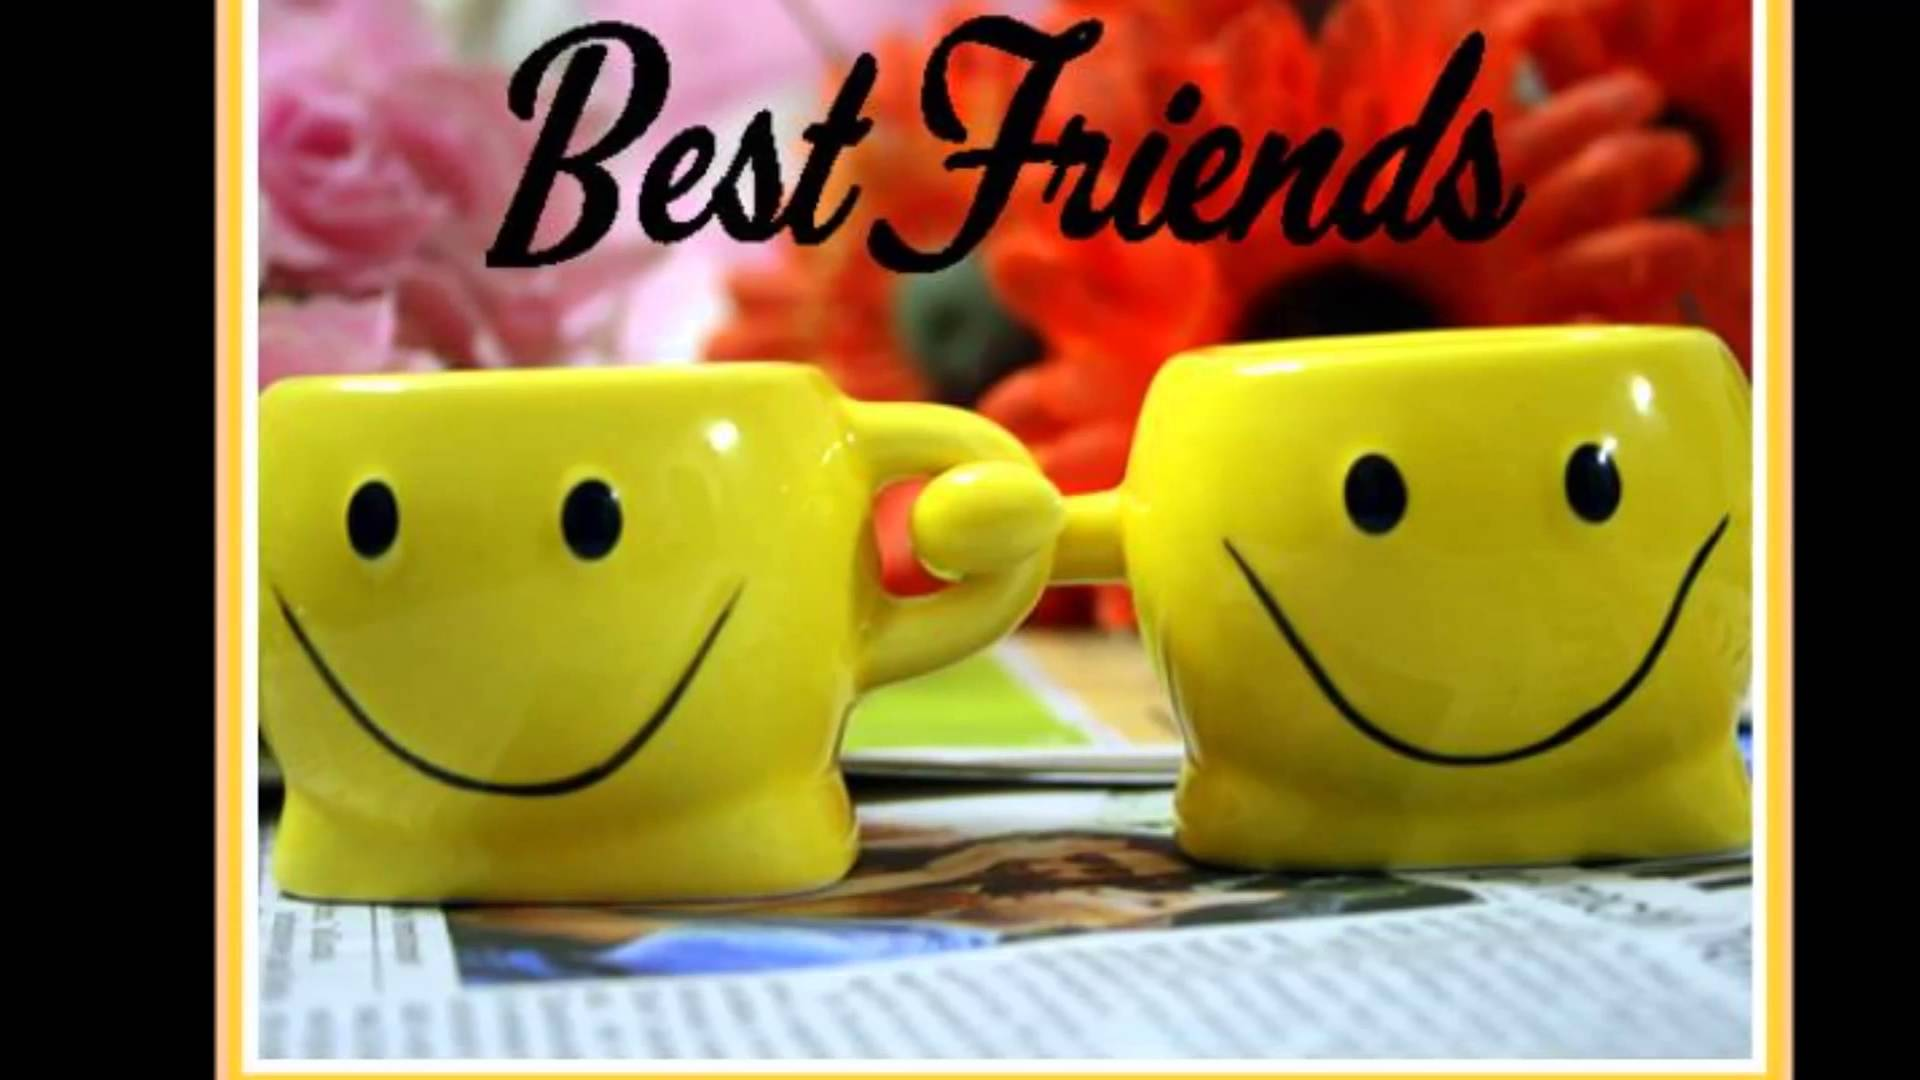 10 Importance of Friendship In Our Life And Society